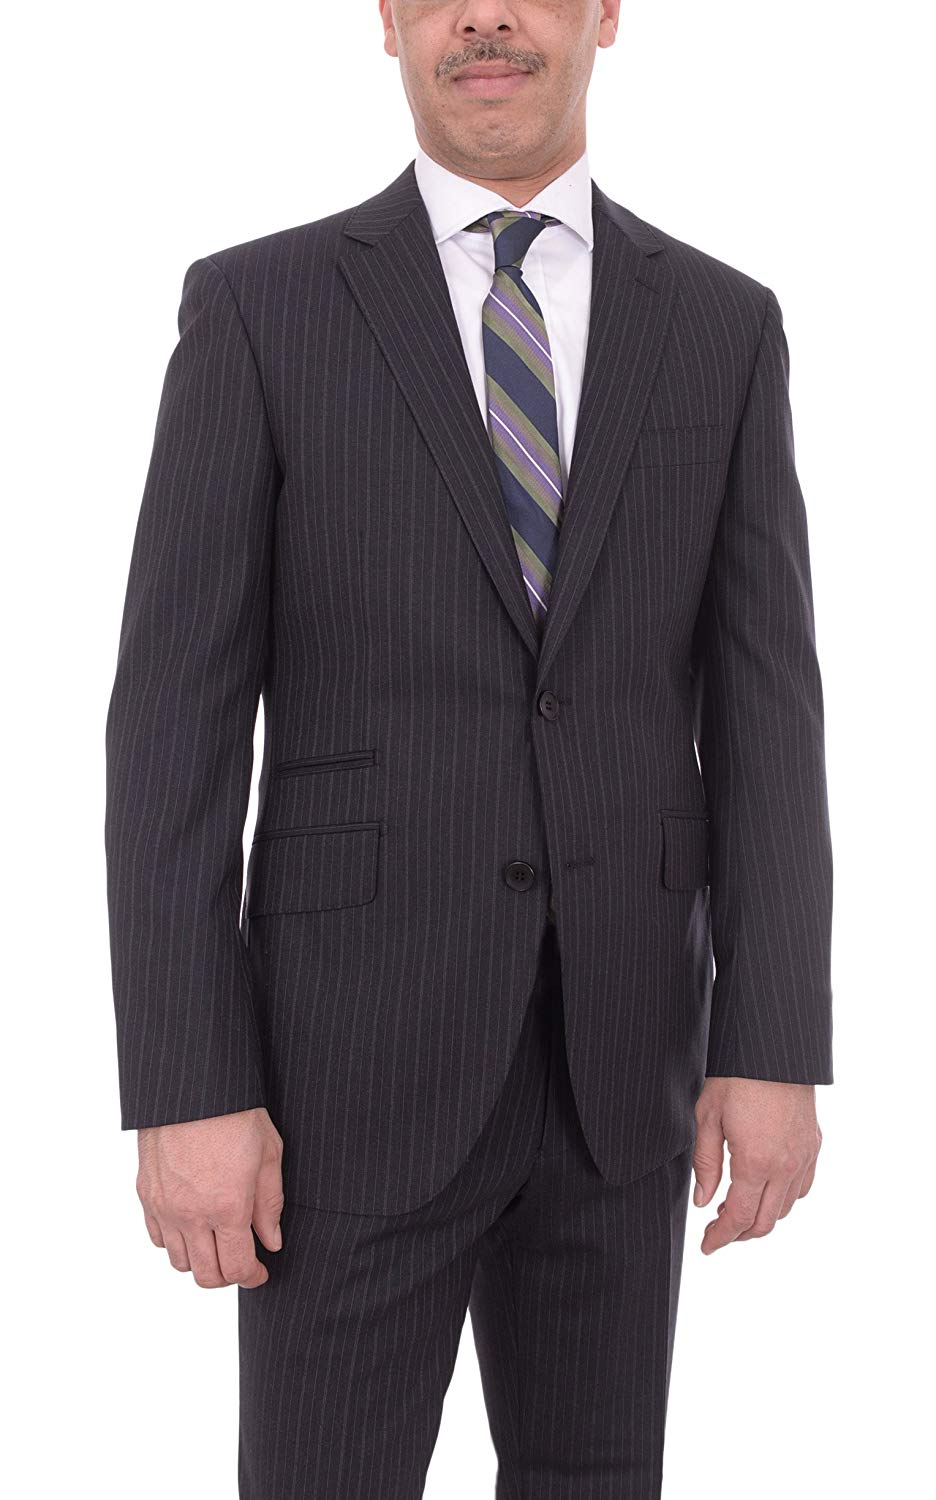 526a12f8542cdf Get Quotations · The Suit Depot Mens NAPOLI Extra Slim Fit Gray Striped  Half Canvassed Wool Suit Ticket Pocket